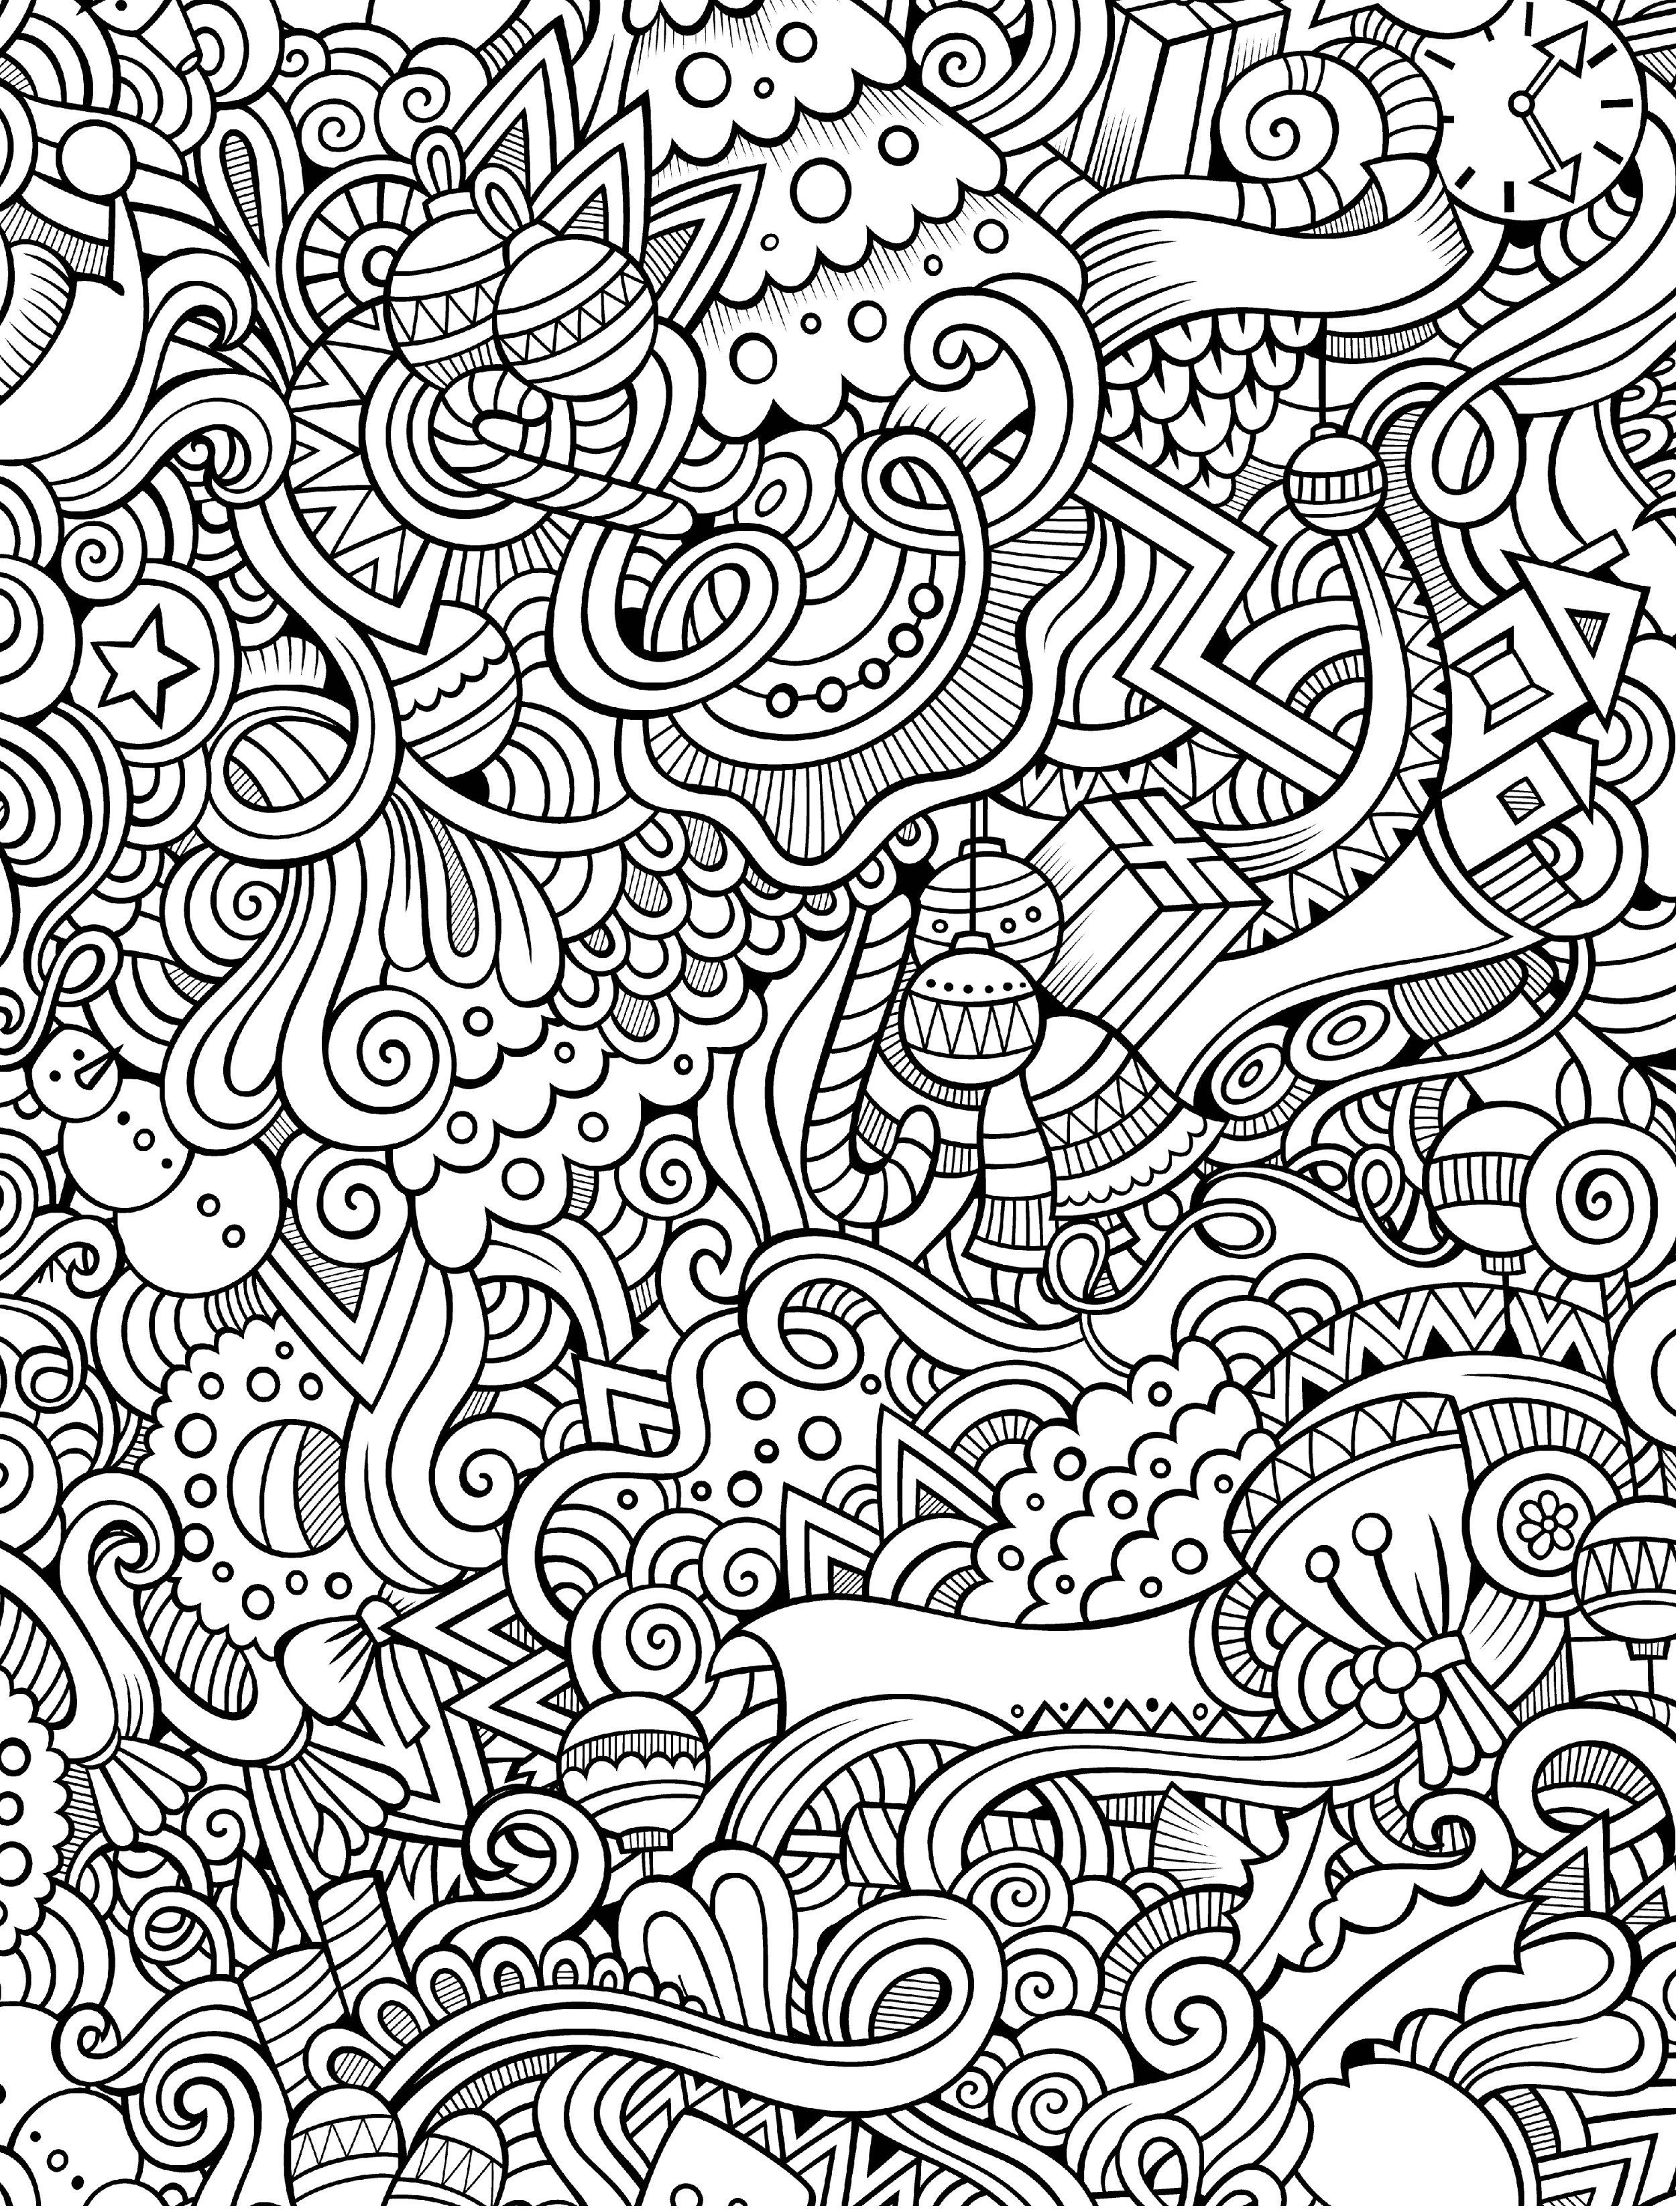 Free Printable Abstract Christmas Coloring Pages With 10 Holiday Adult